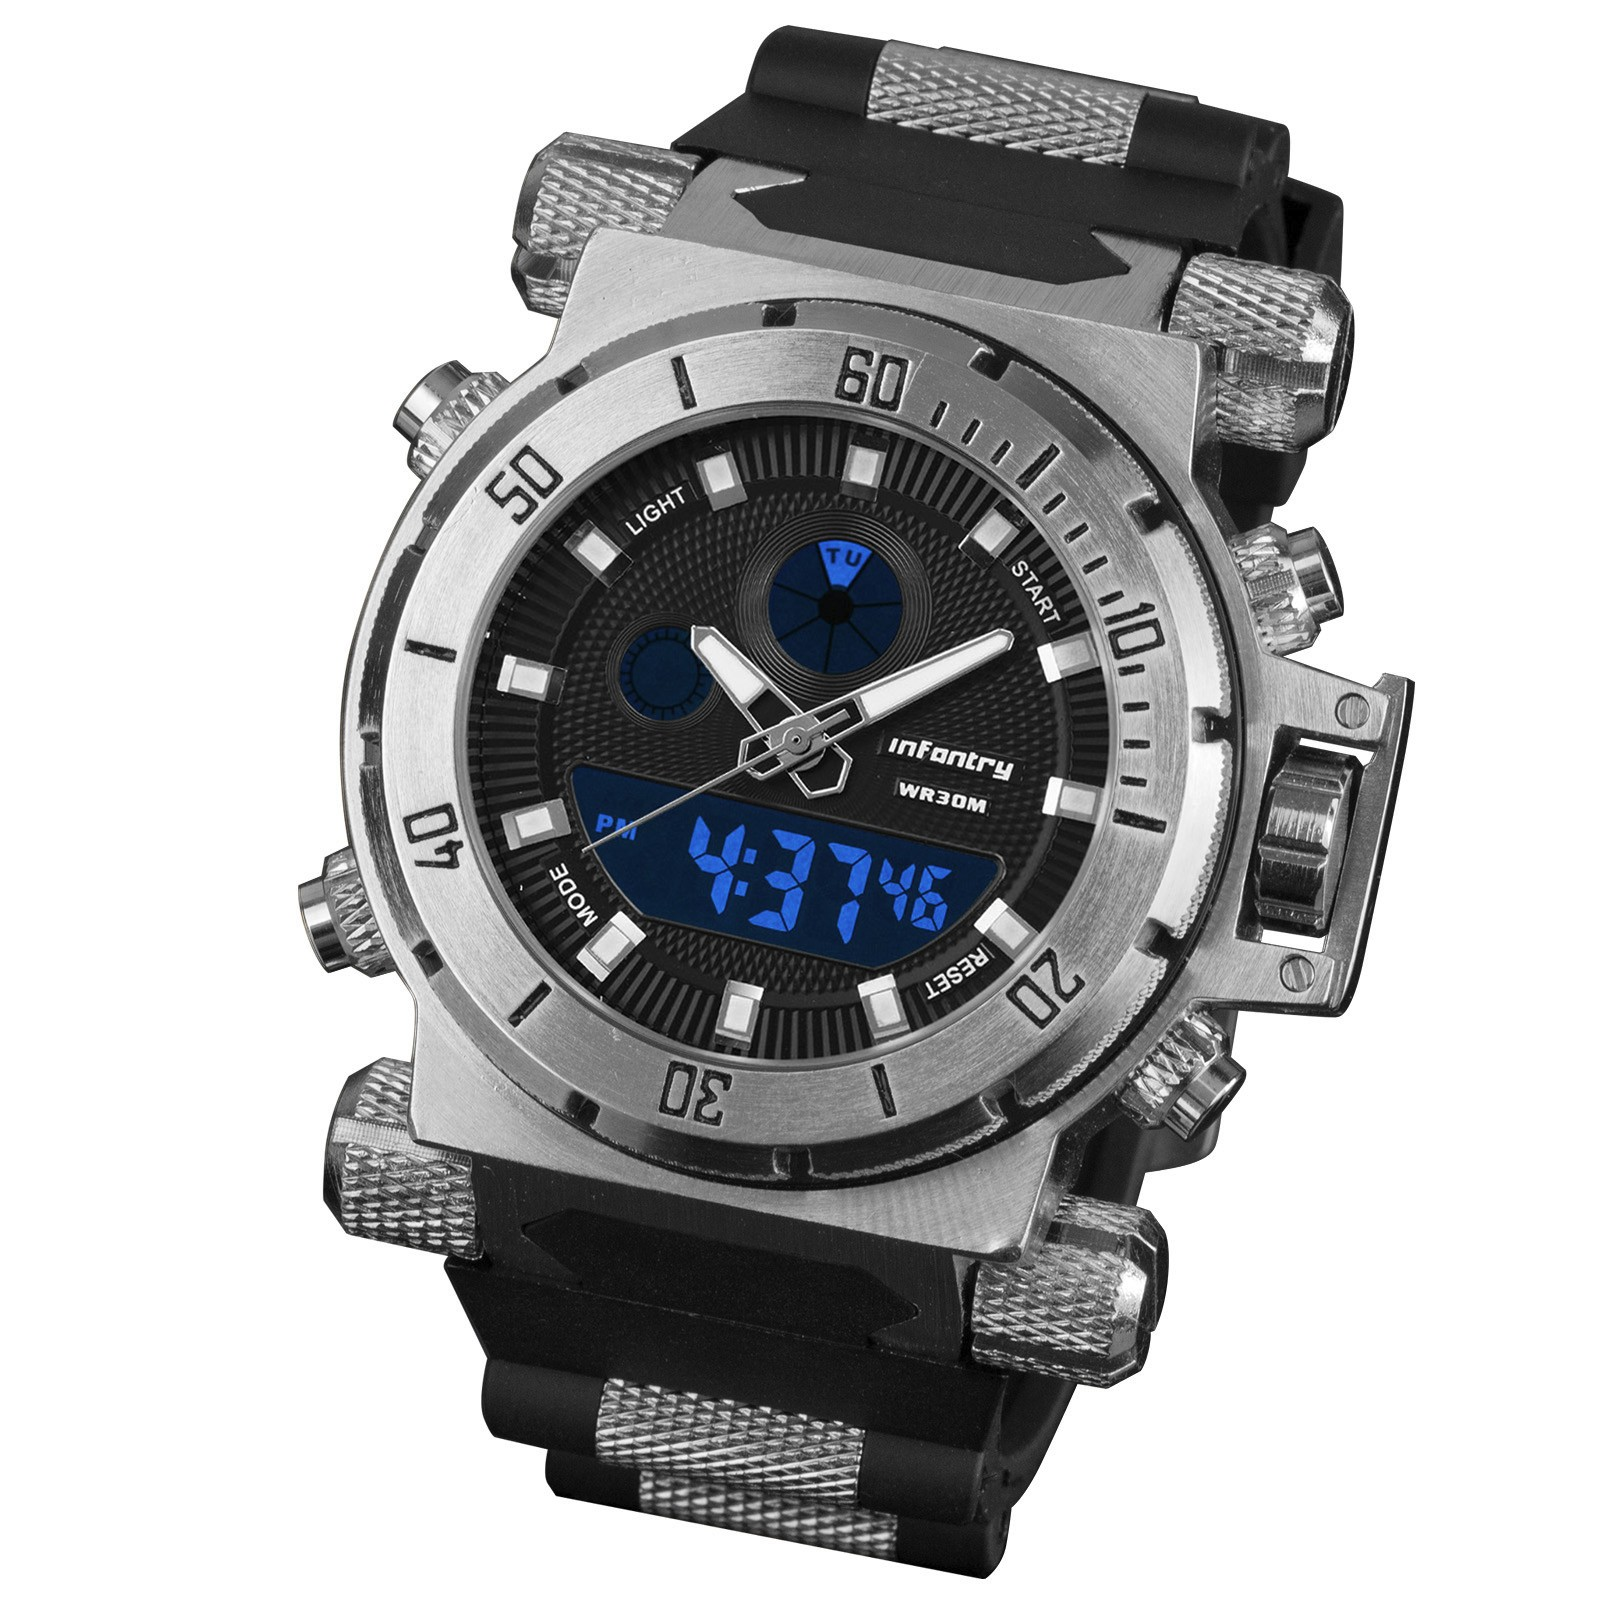 New-Infantry-Alarm-Digital-Dual-Military-Chronograph-Sport-Mens-Wristwatch-Watch